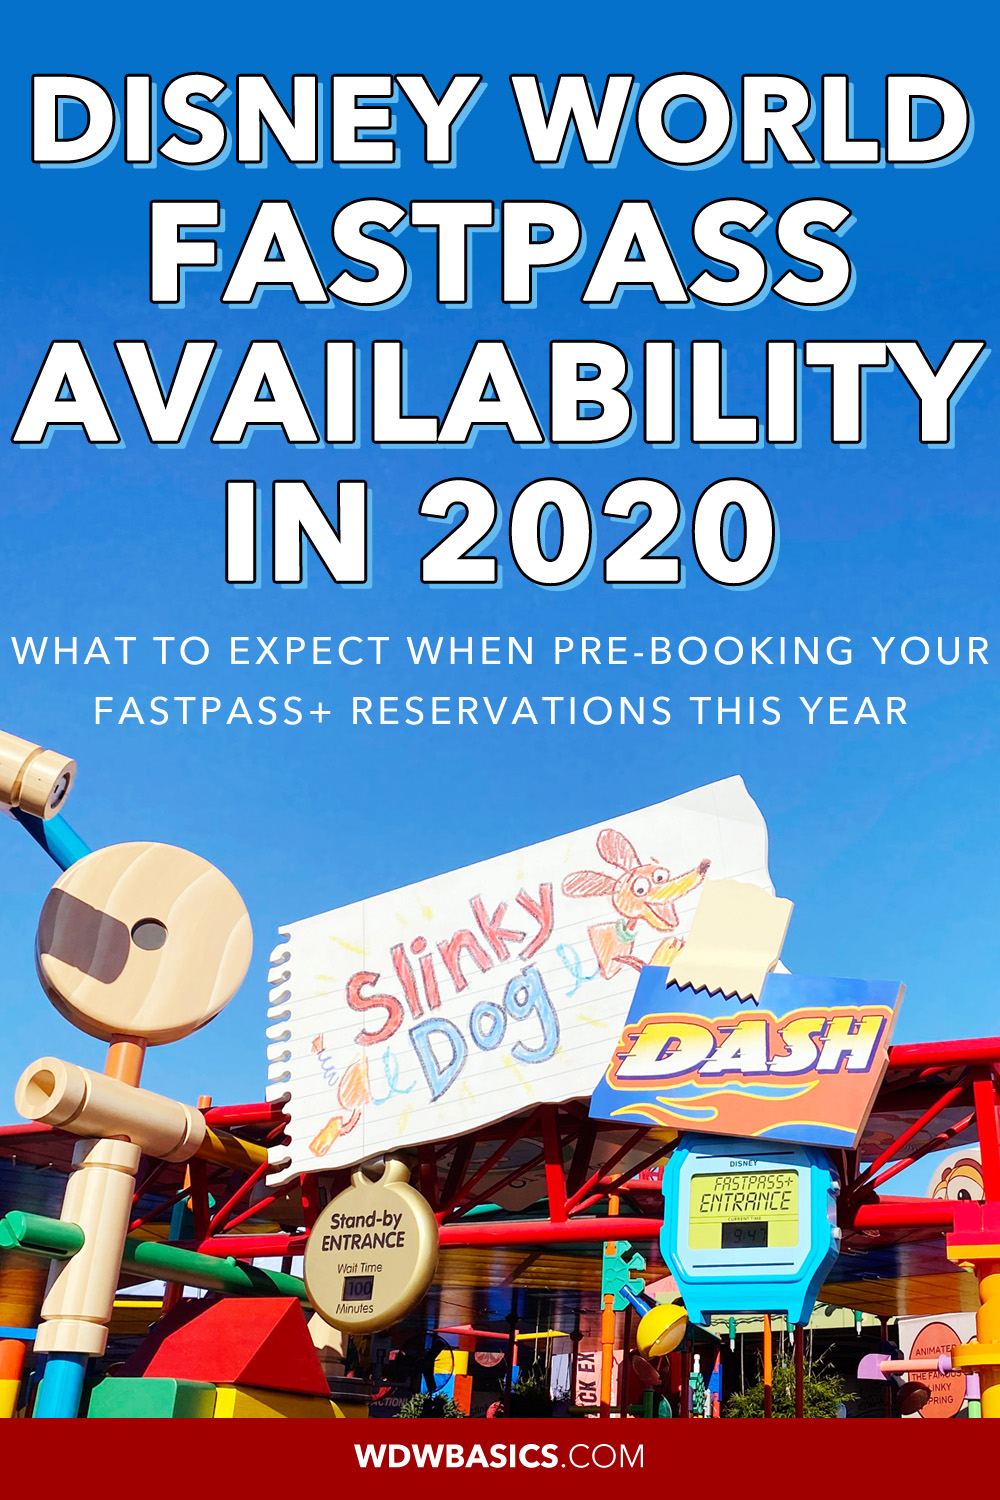 Disney FastPass+ Availability in 2020